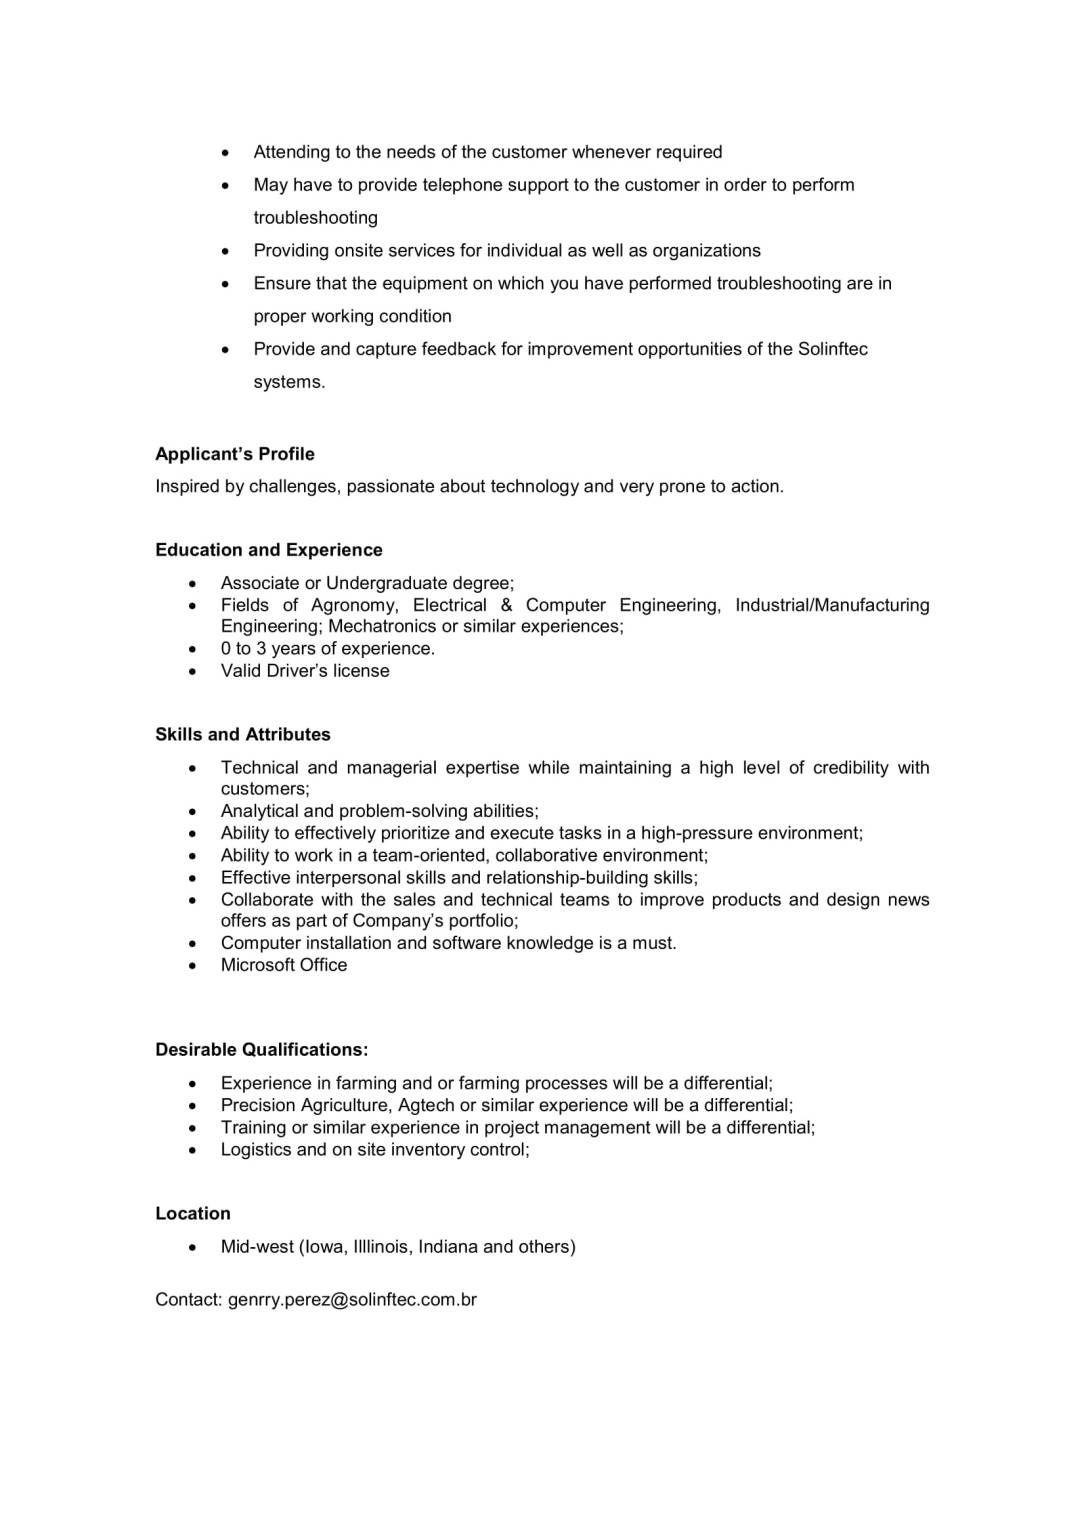 SOLINFTEC - Project Implementation Analyst-2